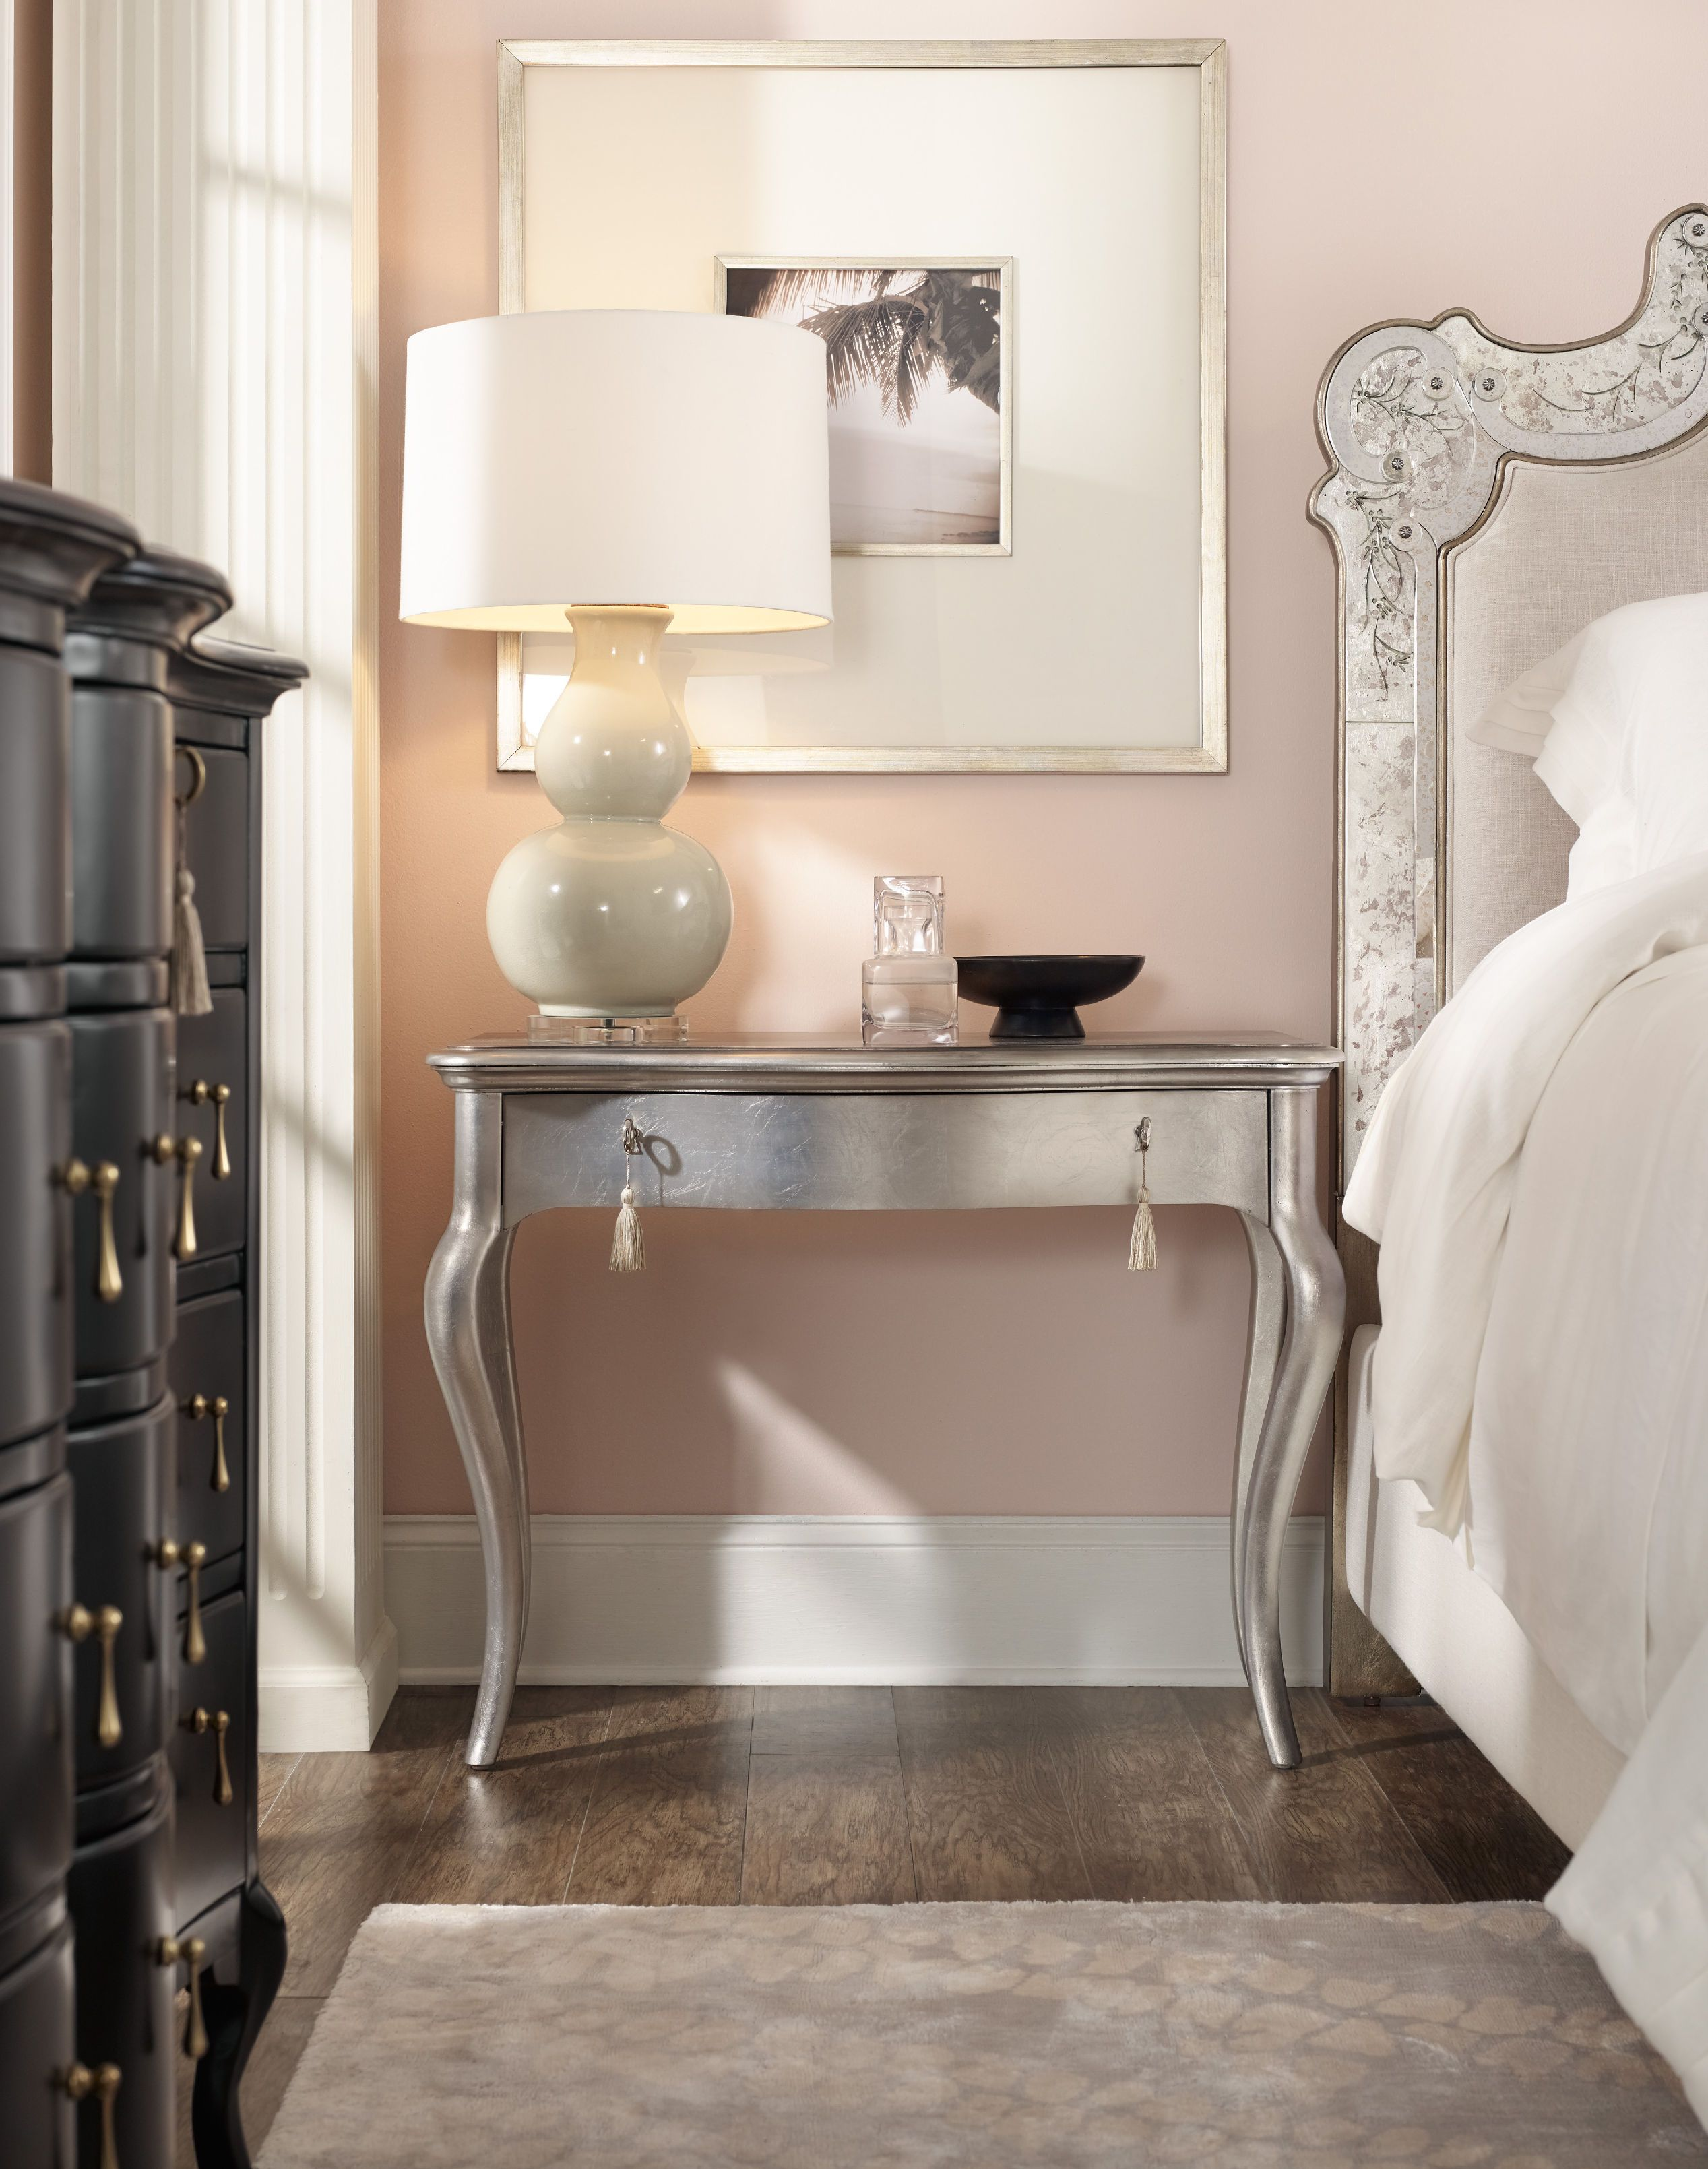 the delicate opulence of this cabriole leg nightstand dressed in